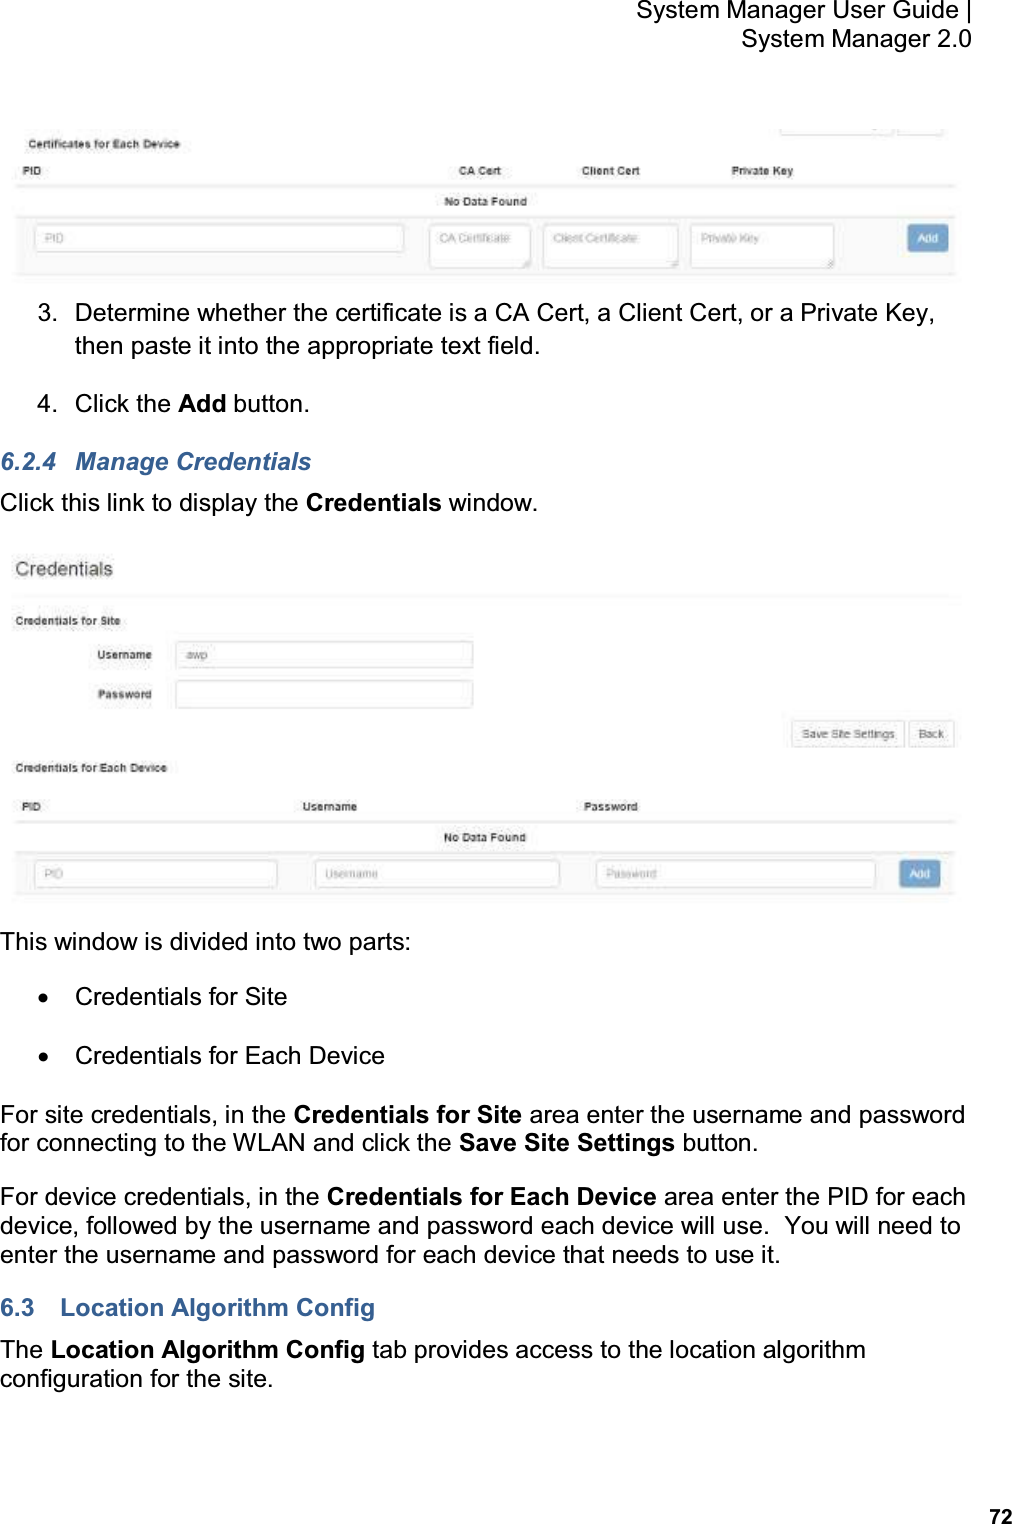 72 System Manager User Guide    System Manager 2.0  3.  Determine whether the certificate is a CA Cert, a Client Cert, or a Private Key, then paste it into the appropriate text field. 4.  Click the Add button. 6.2.4  Manage Credentials Click this link to display the Credentials window.  This window is divided into two parts: •  Credentials for Site •  Credentials for Each Device For site credentials, in the Credentials for Site area enter the username and password for connecting to the WLAN and click the Save Site Settings button. For device credentials, in the Credentials for Each Device area enter the PID for each device, followed by the username and password each device will use.  You will need to enter the username and password for each device that needs to use it. 6.3  Location Algorithm Config The Location Algorithm Config tab provides access to the location algorithm configuration for the site.